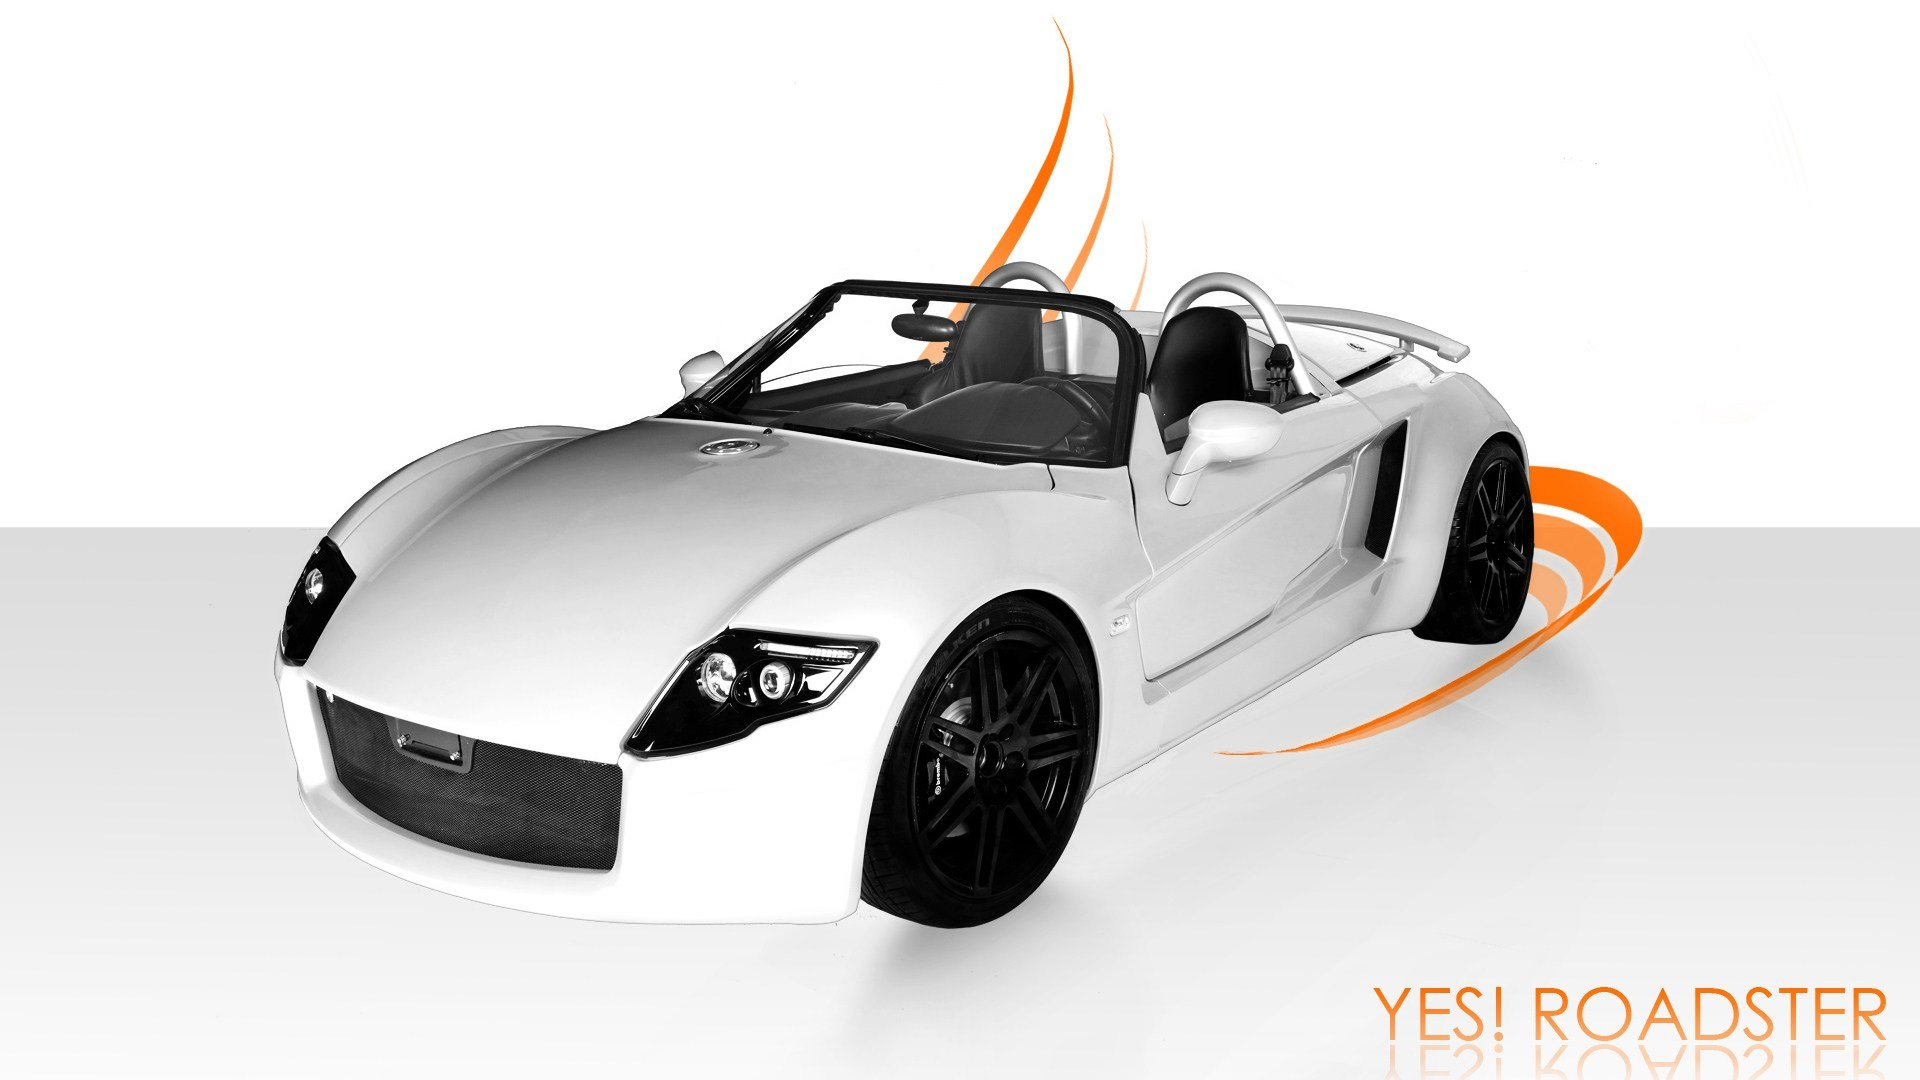 New Yes Roadster 3 2 Turbo White Papel De Parede Hd Plano On This Month